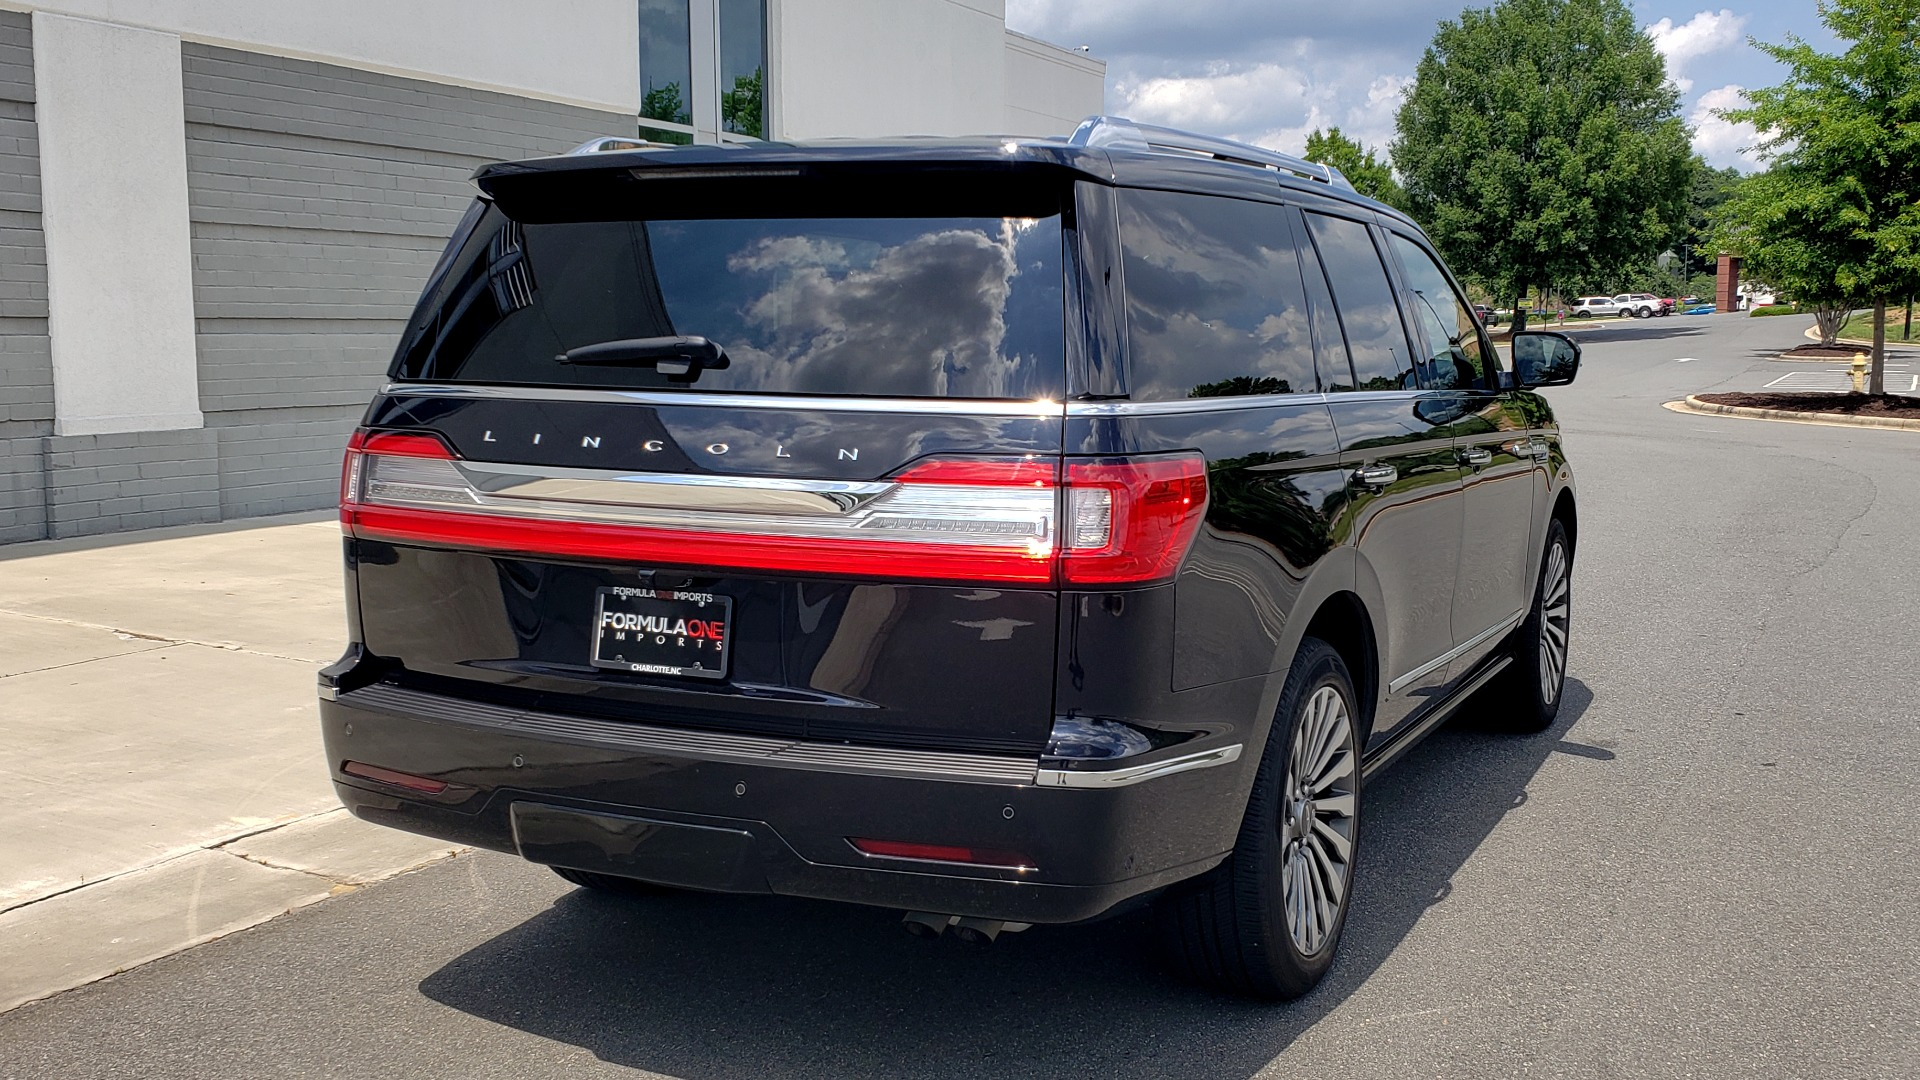 Used 2019 Lincoln NAVIGATOR RESERVE 4X4 / NAV / PANO-ROOF / REVEL ULTIMA AUDIO / 3-ROW / REARVIEW for sale $74,795 at Formula Imports in Charlotte NC 28227 2